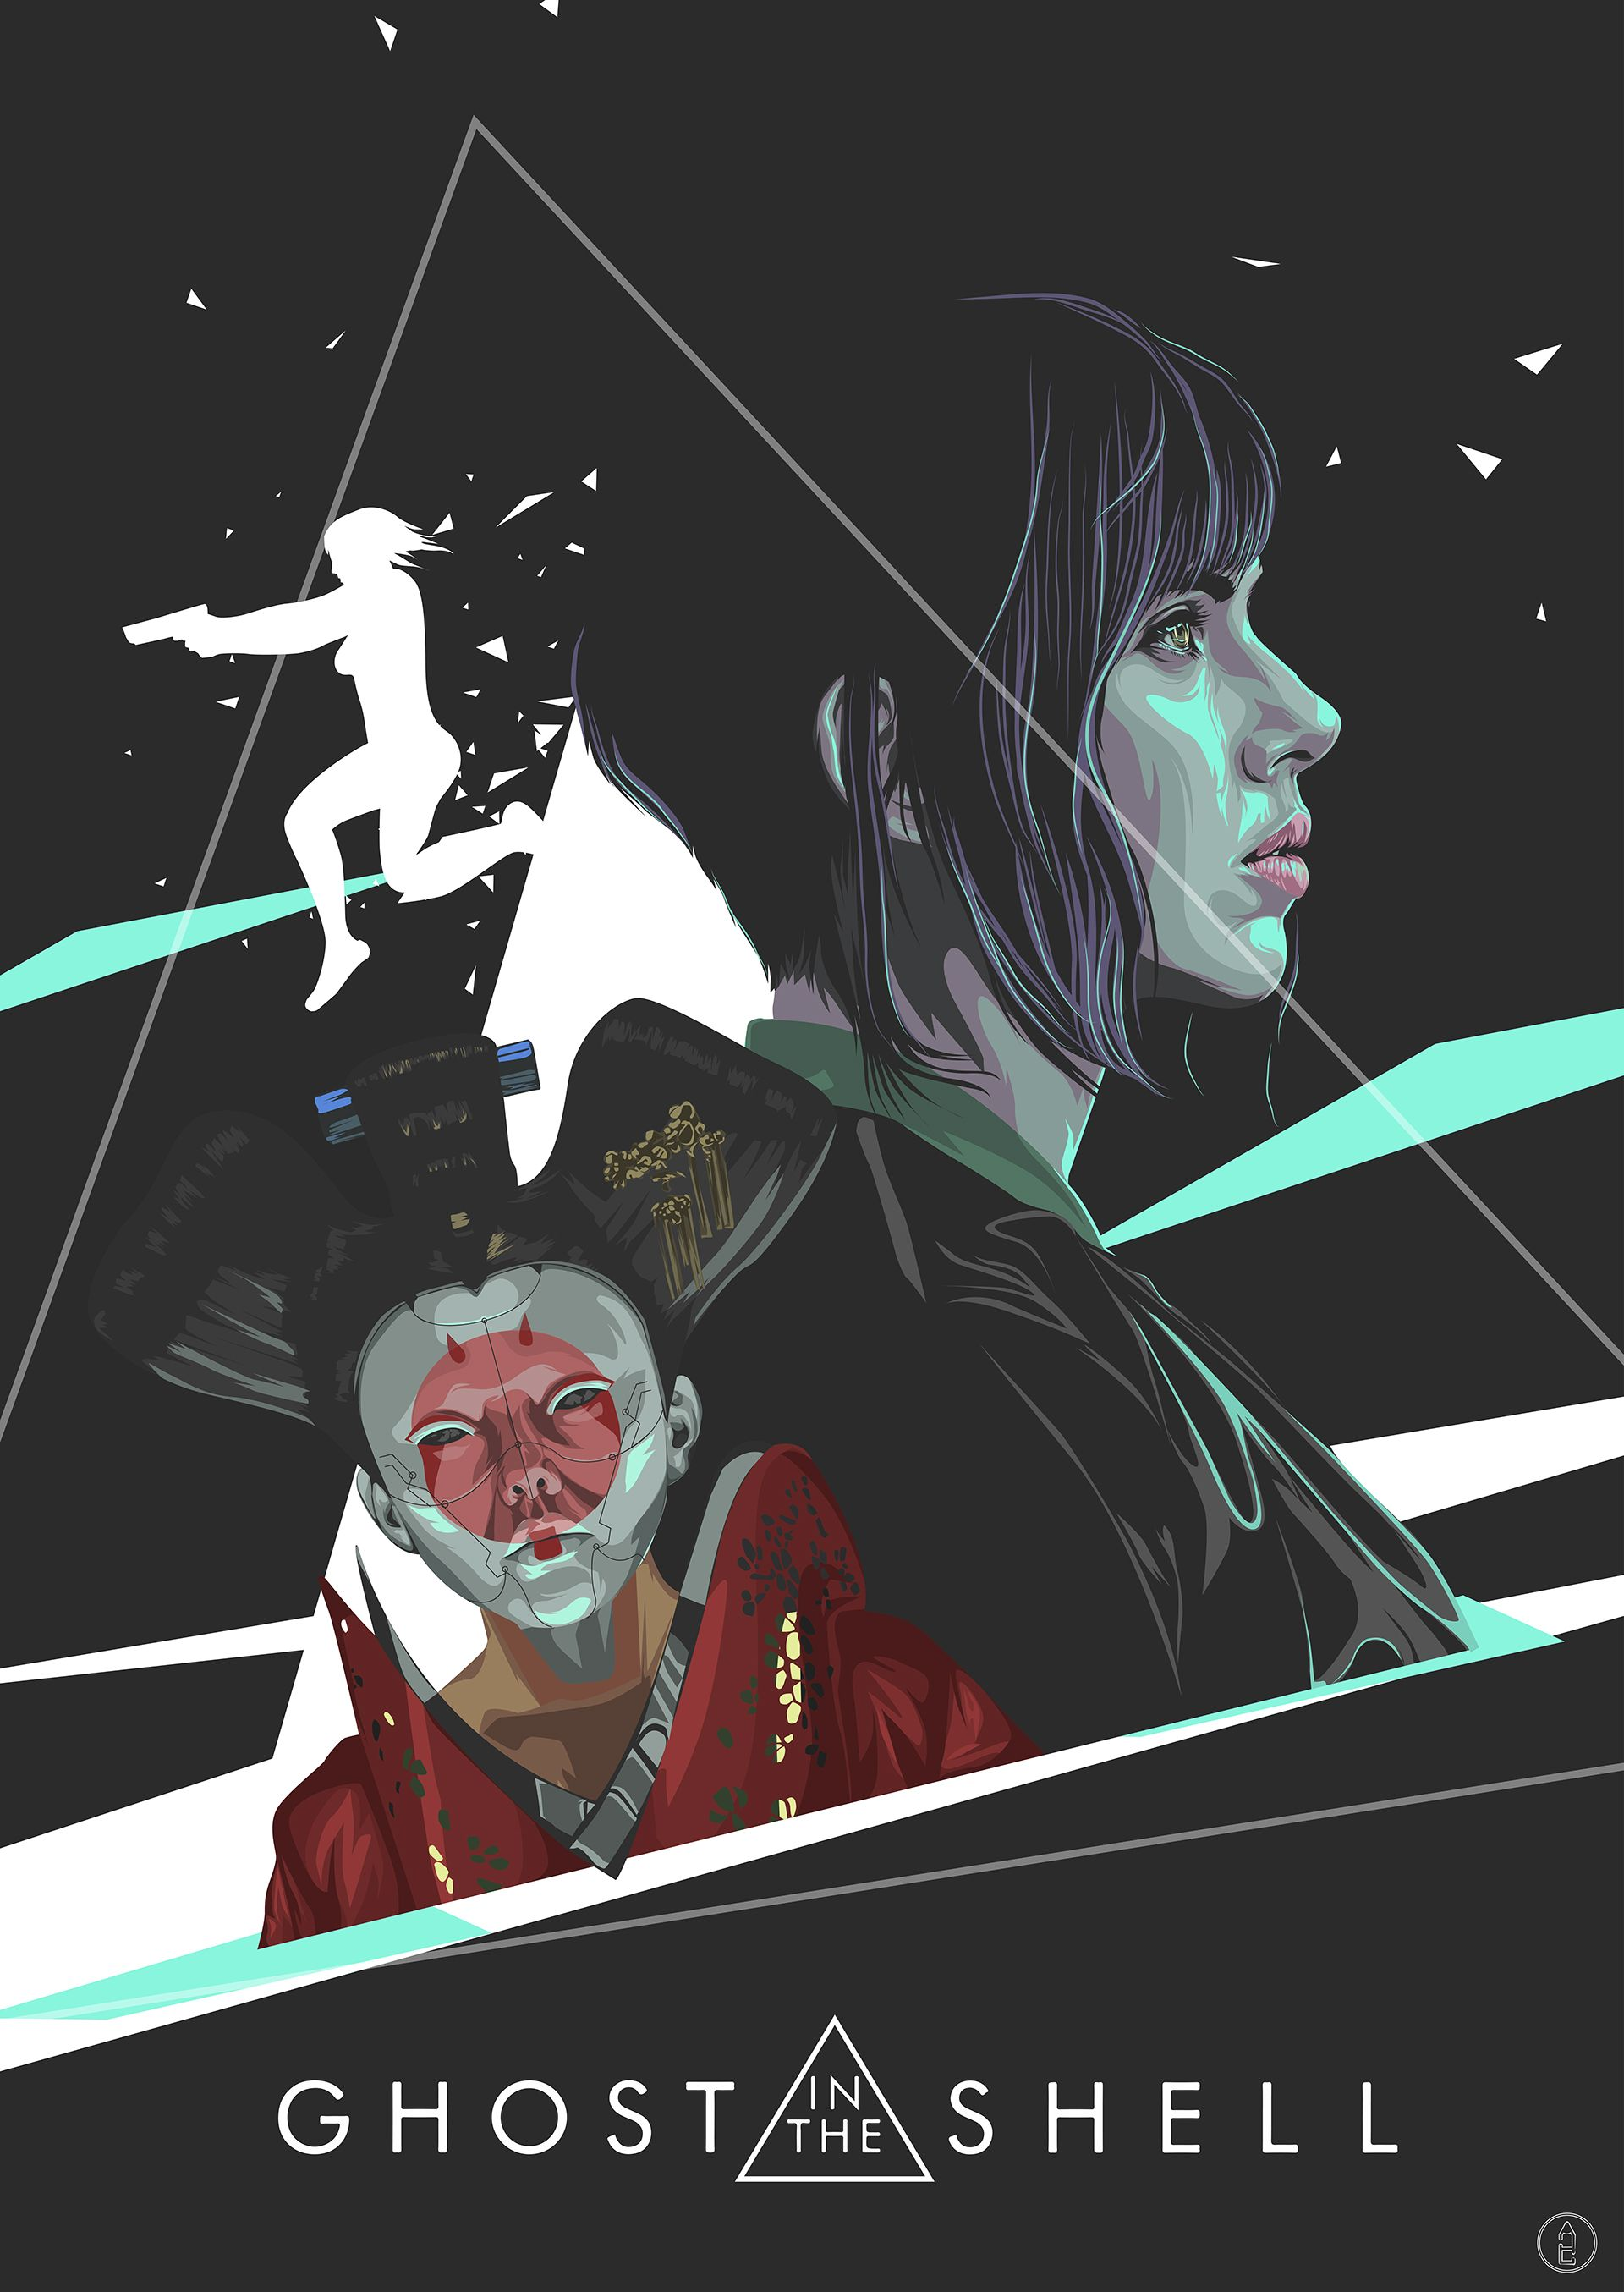 Ghost In The Shell Art Tribute Art Ghost